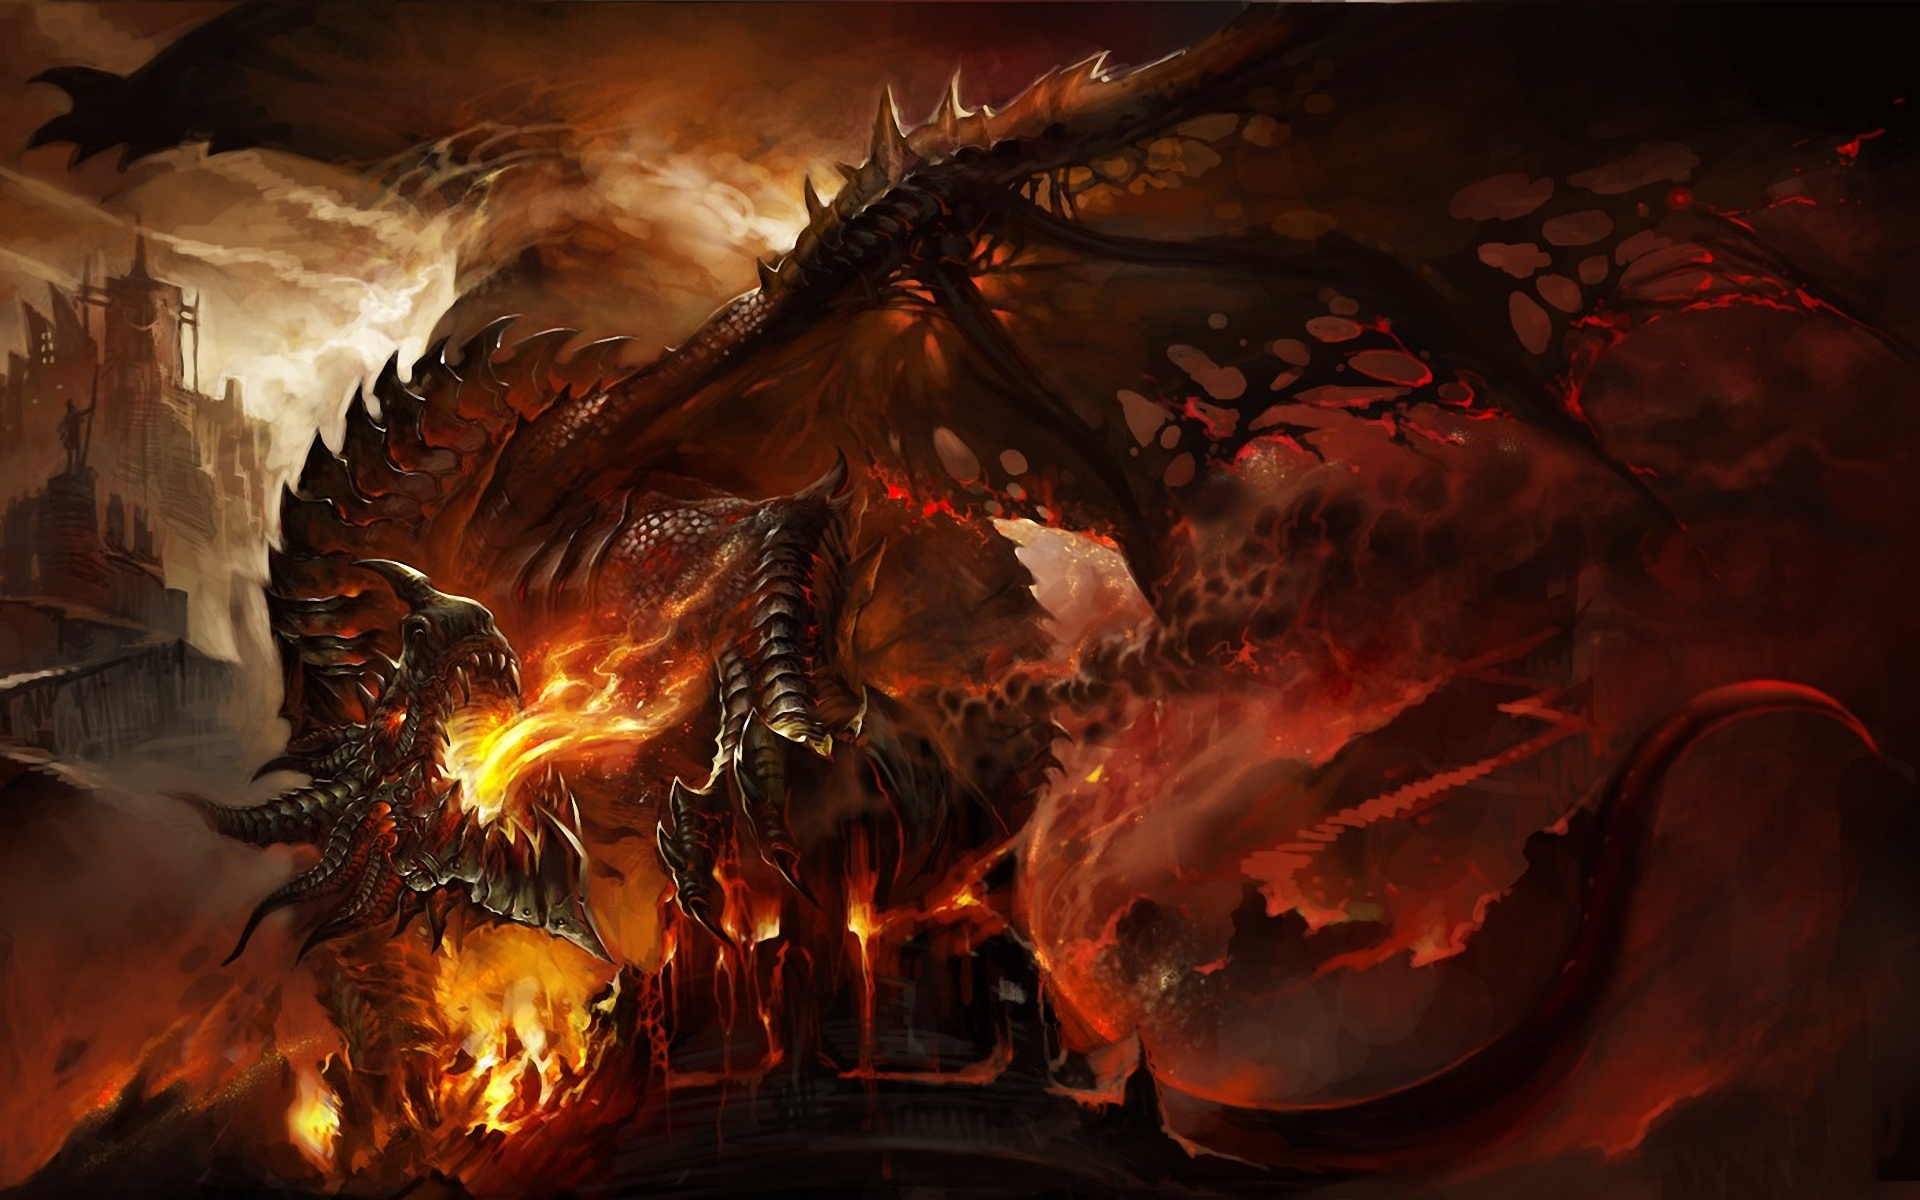 dragon full hd wallpaper and background image | 1920x1200 | id:252918